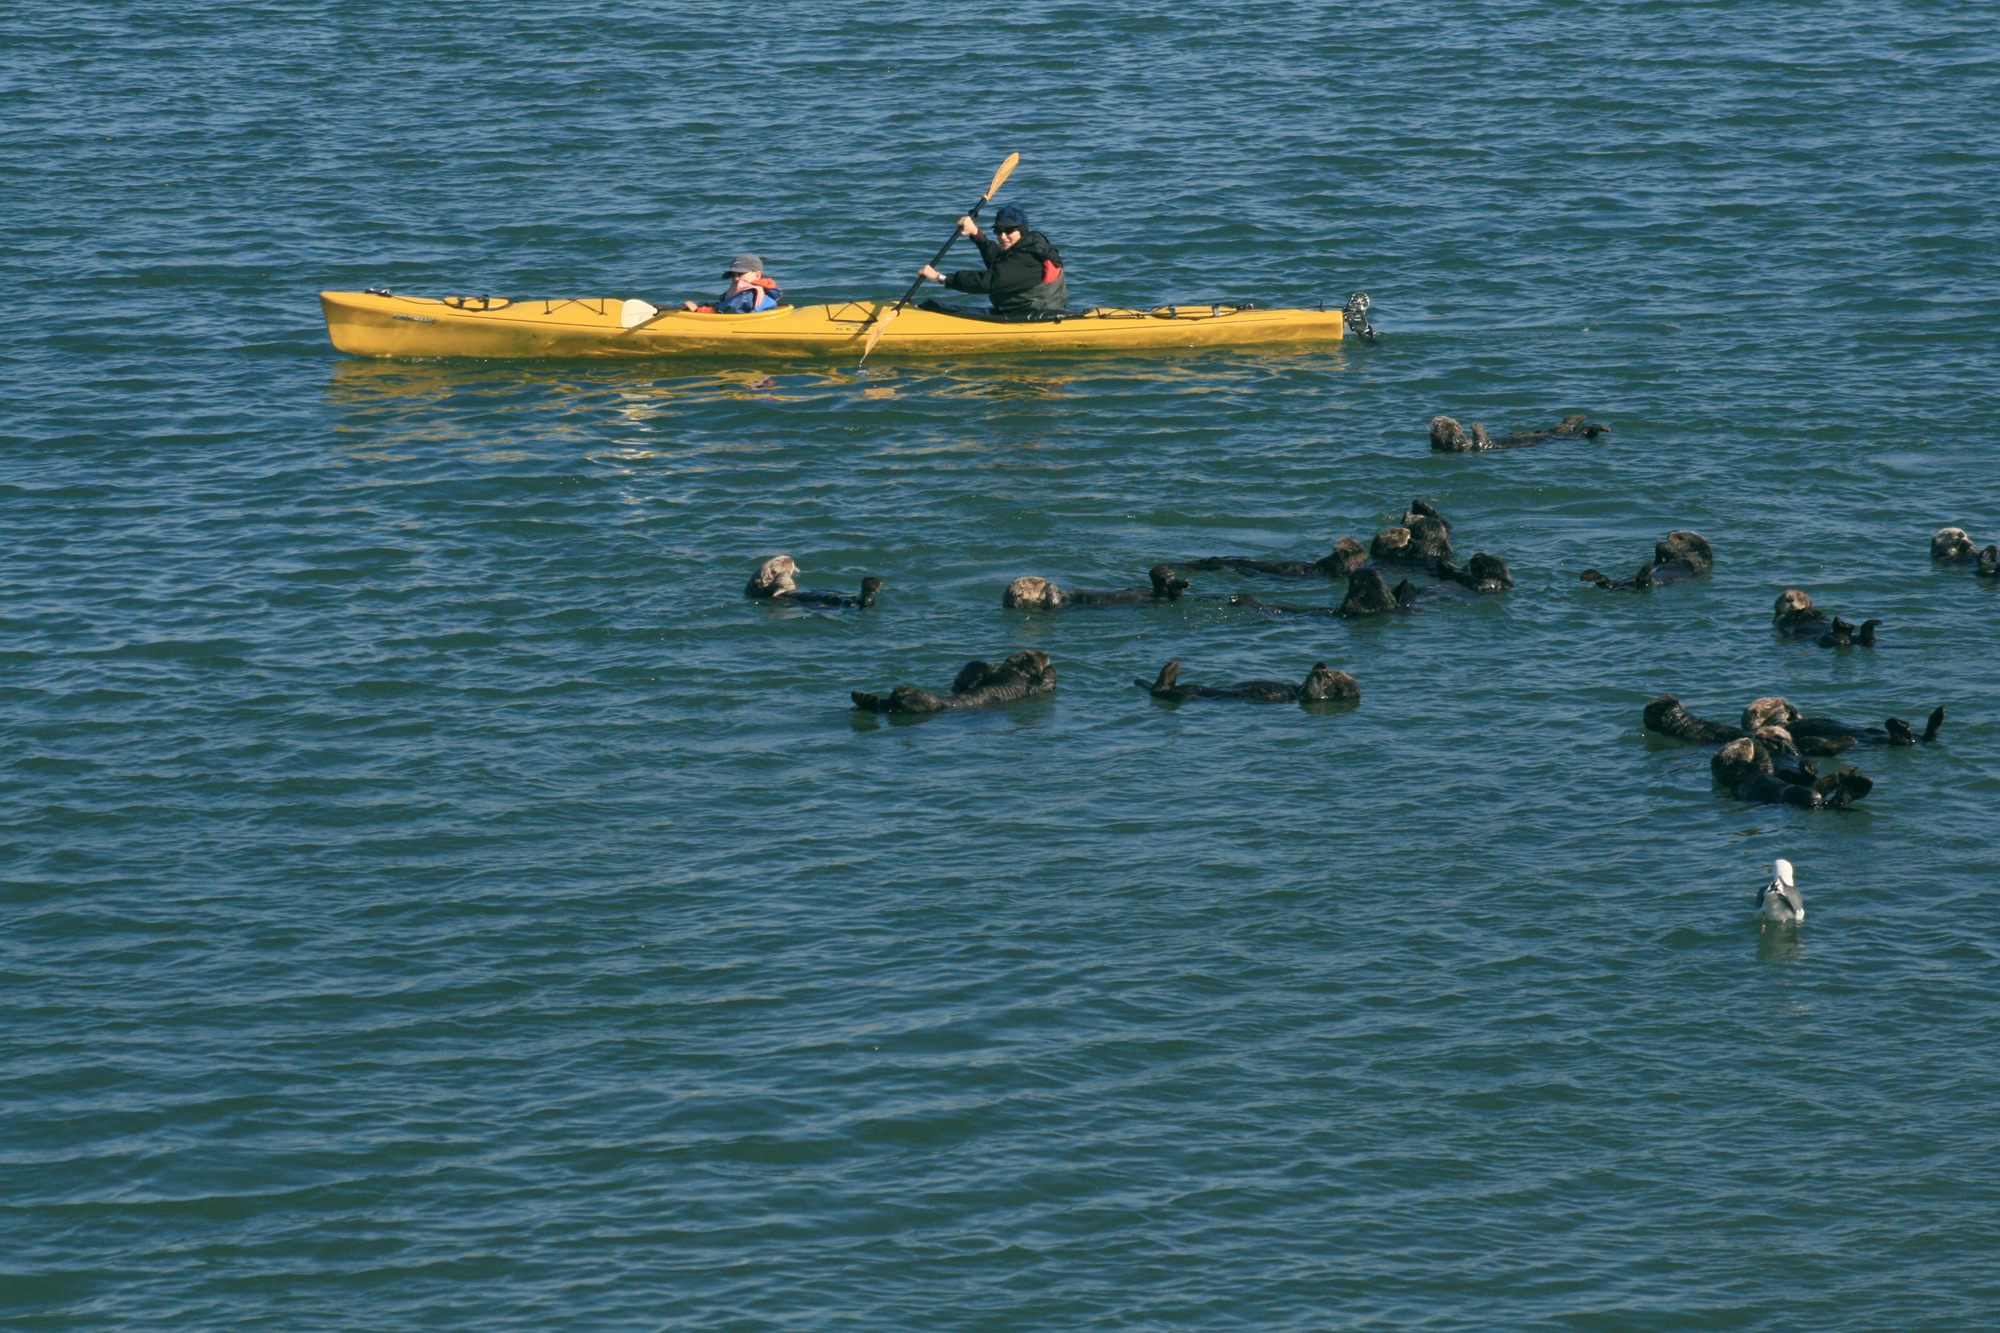 File:Kayak and sea otters.jpg - Wikimedia Commons